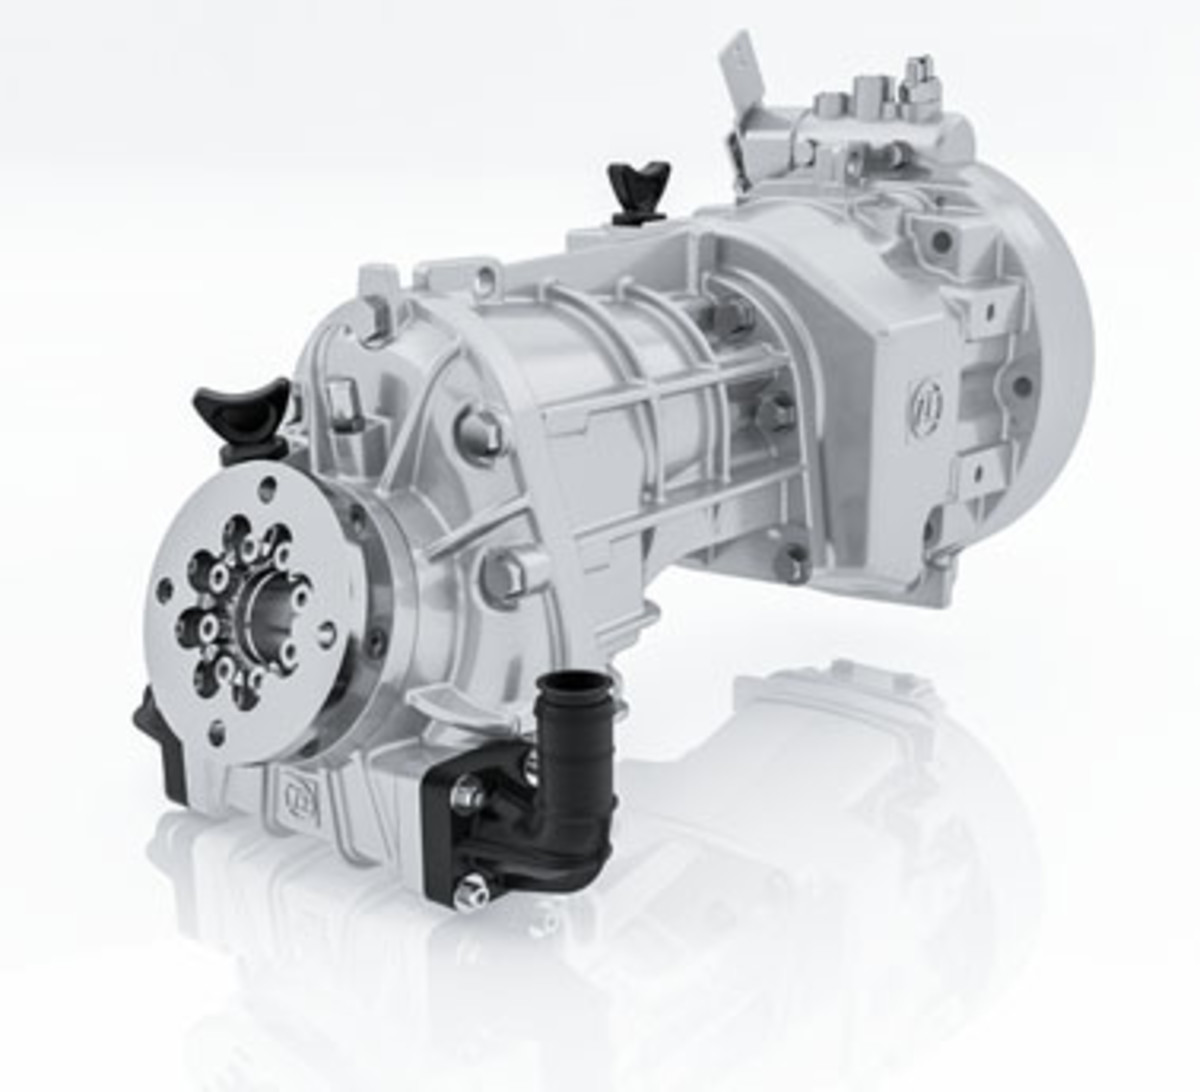 ZF Marine's 48IV and 68IV transmissions are designed for the needs of watersports boat builders.